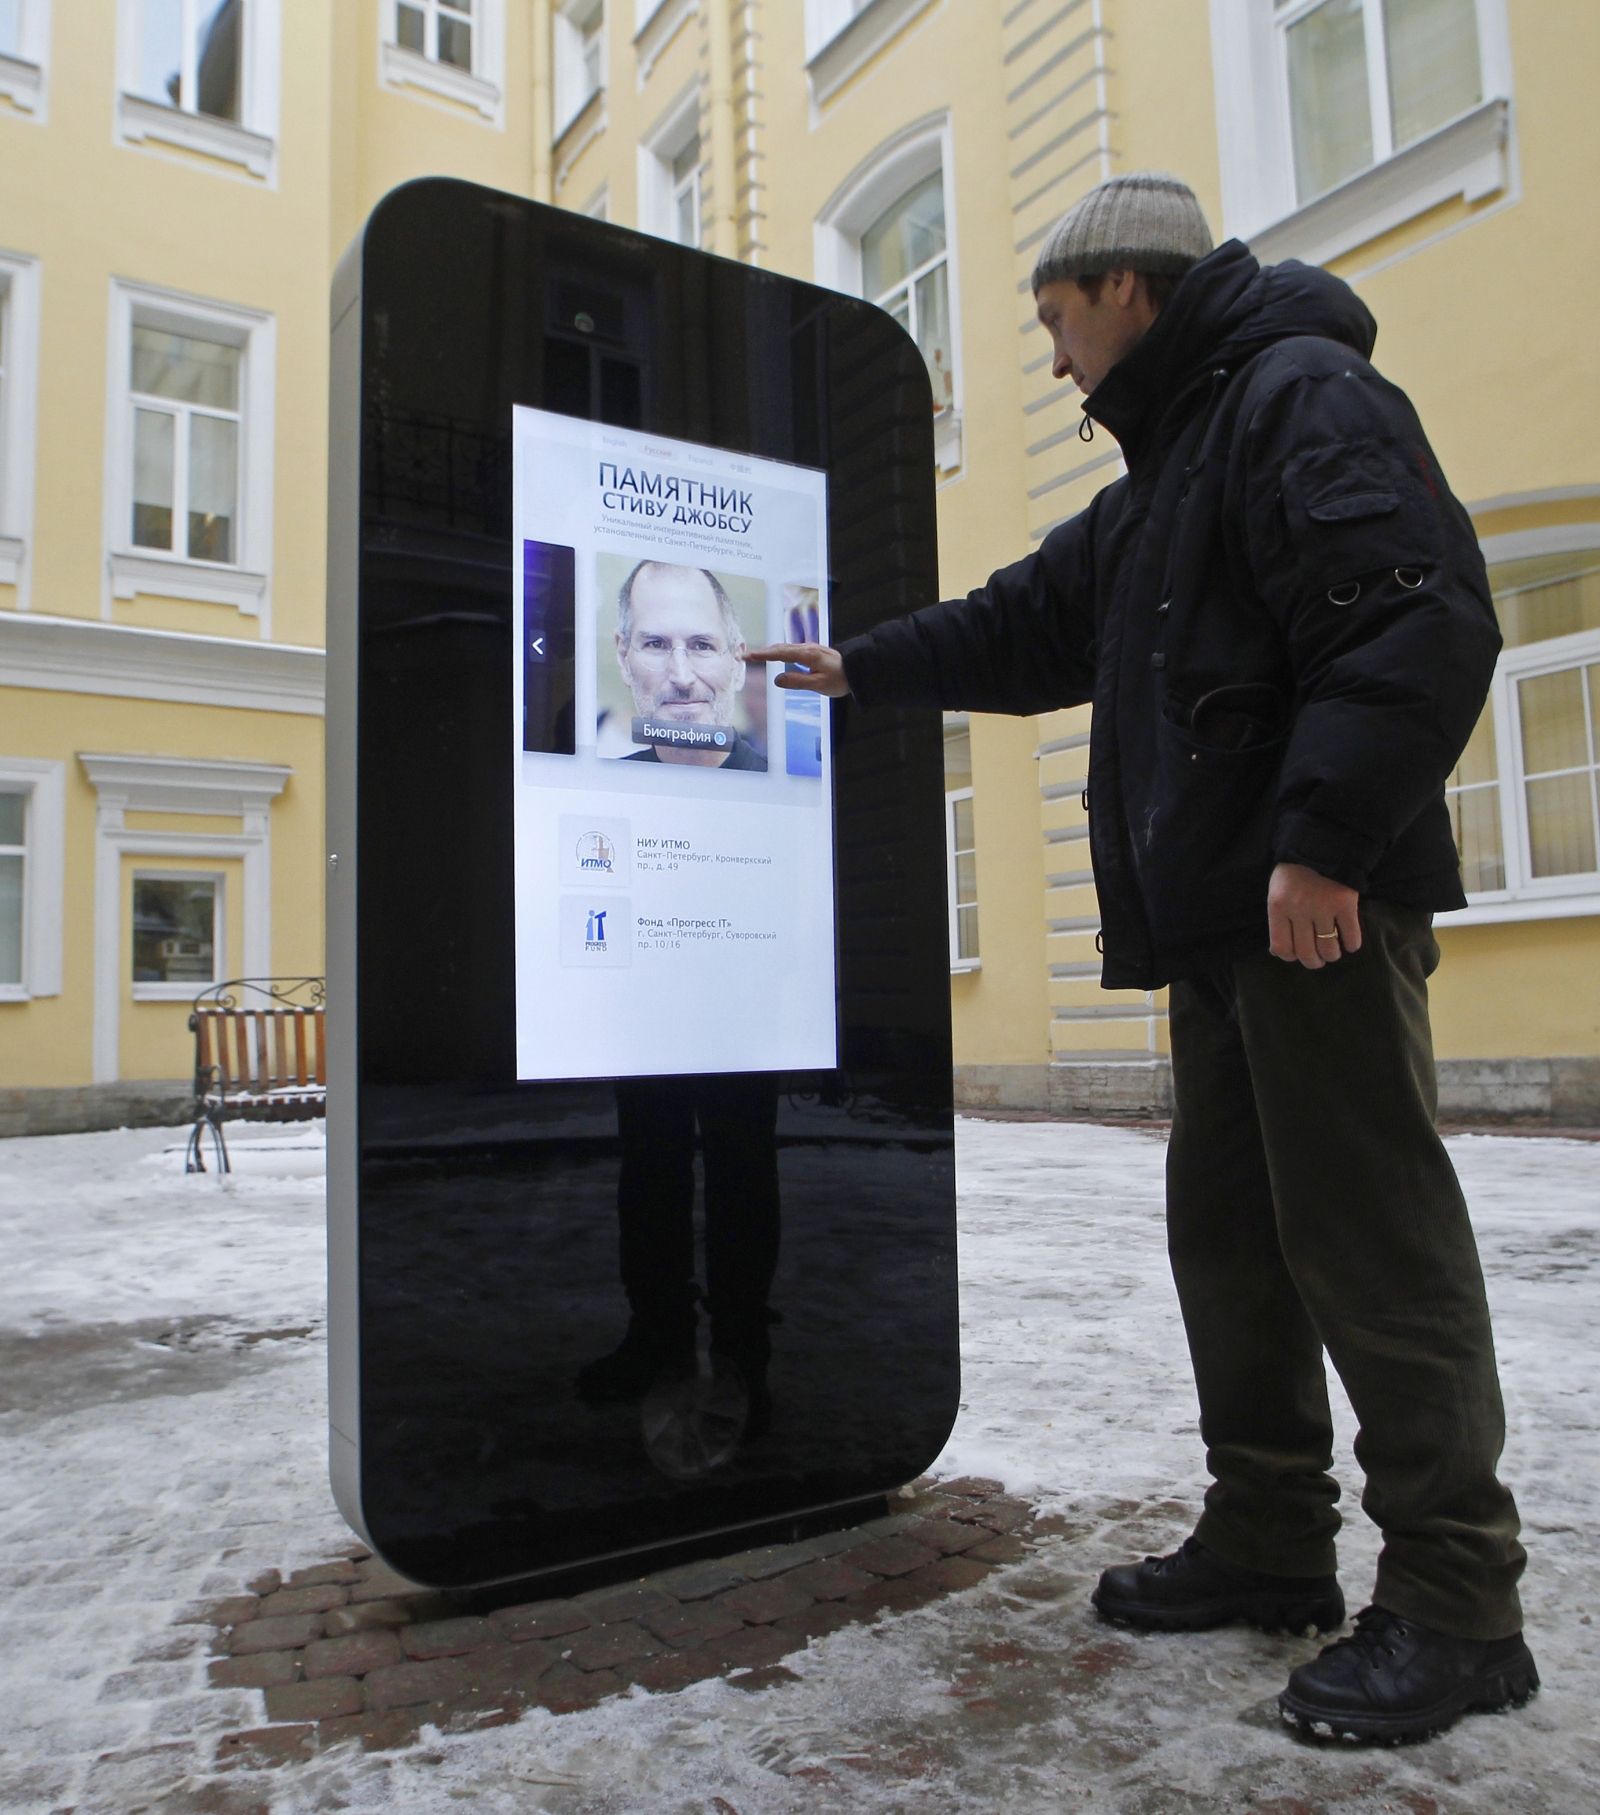 A man looks at a recently erected iPhone-shaped monument in memory of Apple's late co-founder Steve Jobs in the yard of the State University of Information Technologies, Mechanics and Optics in St. Petersburg January 10, 2013